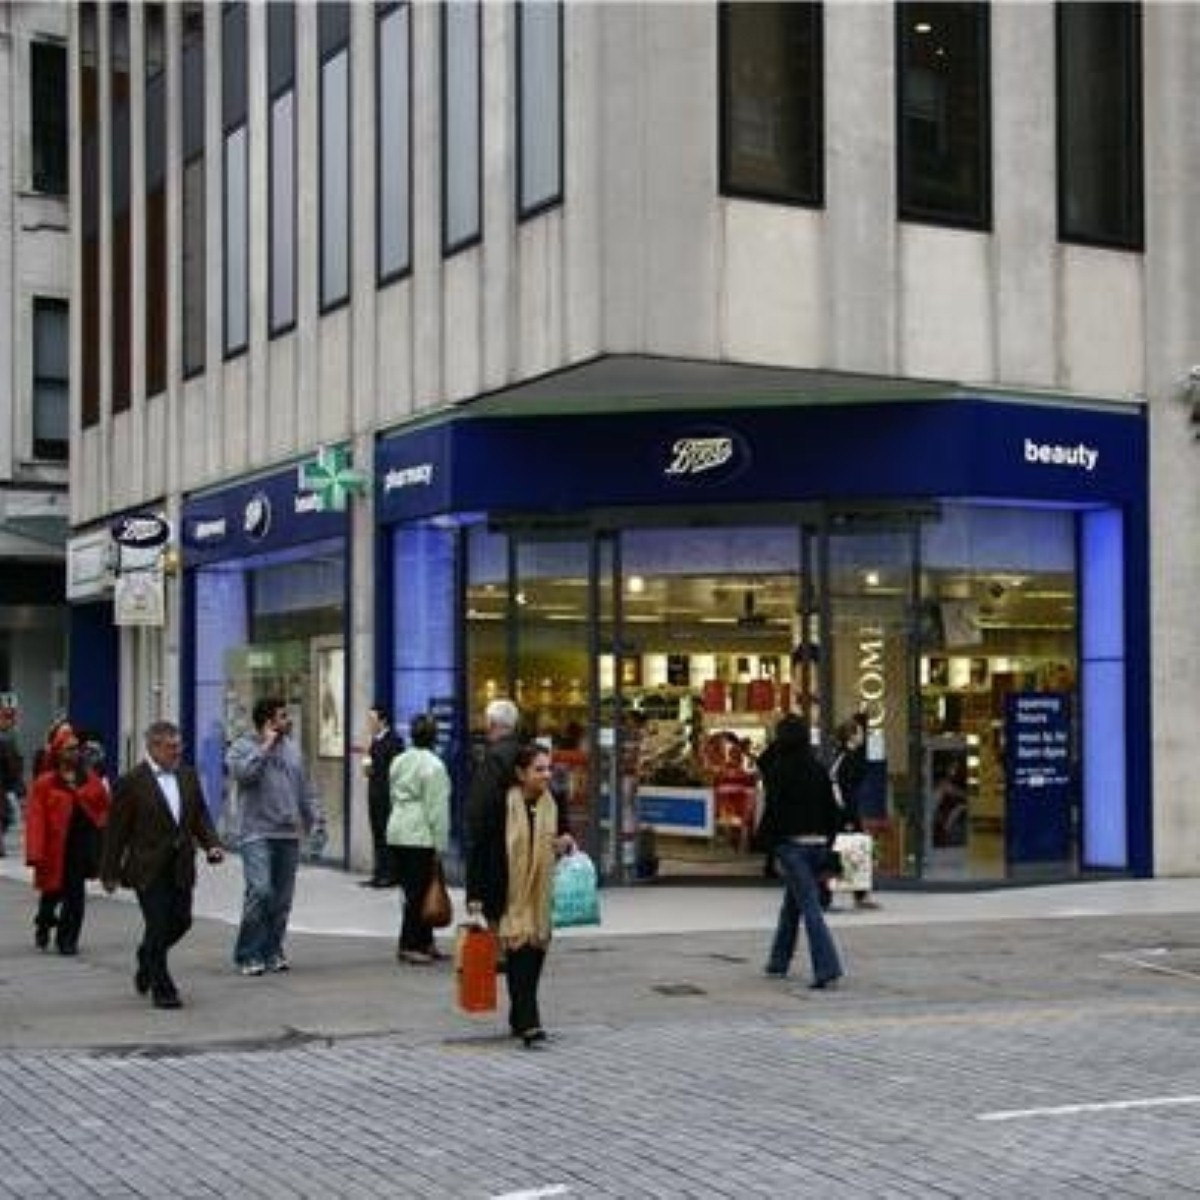 Boots: Just one target for private equity firms